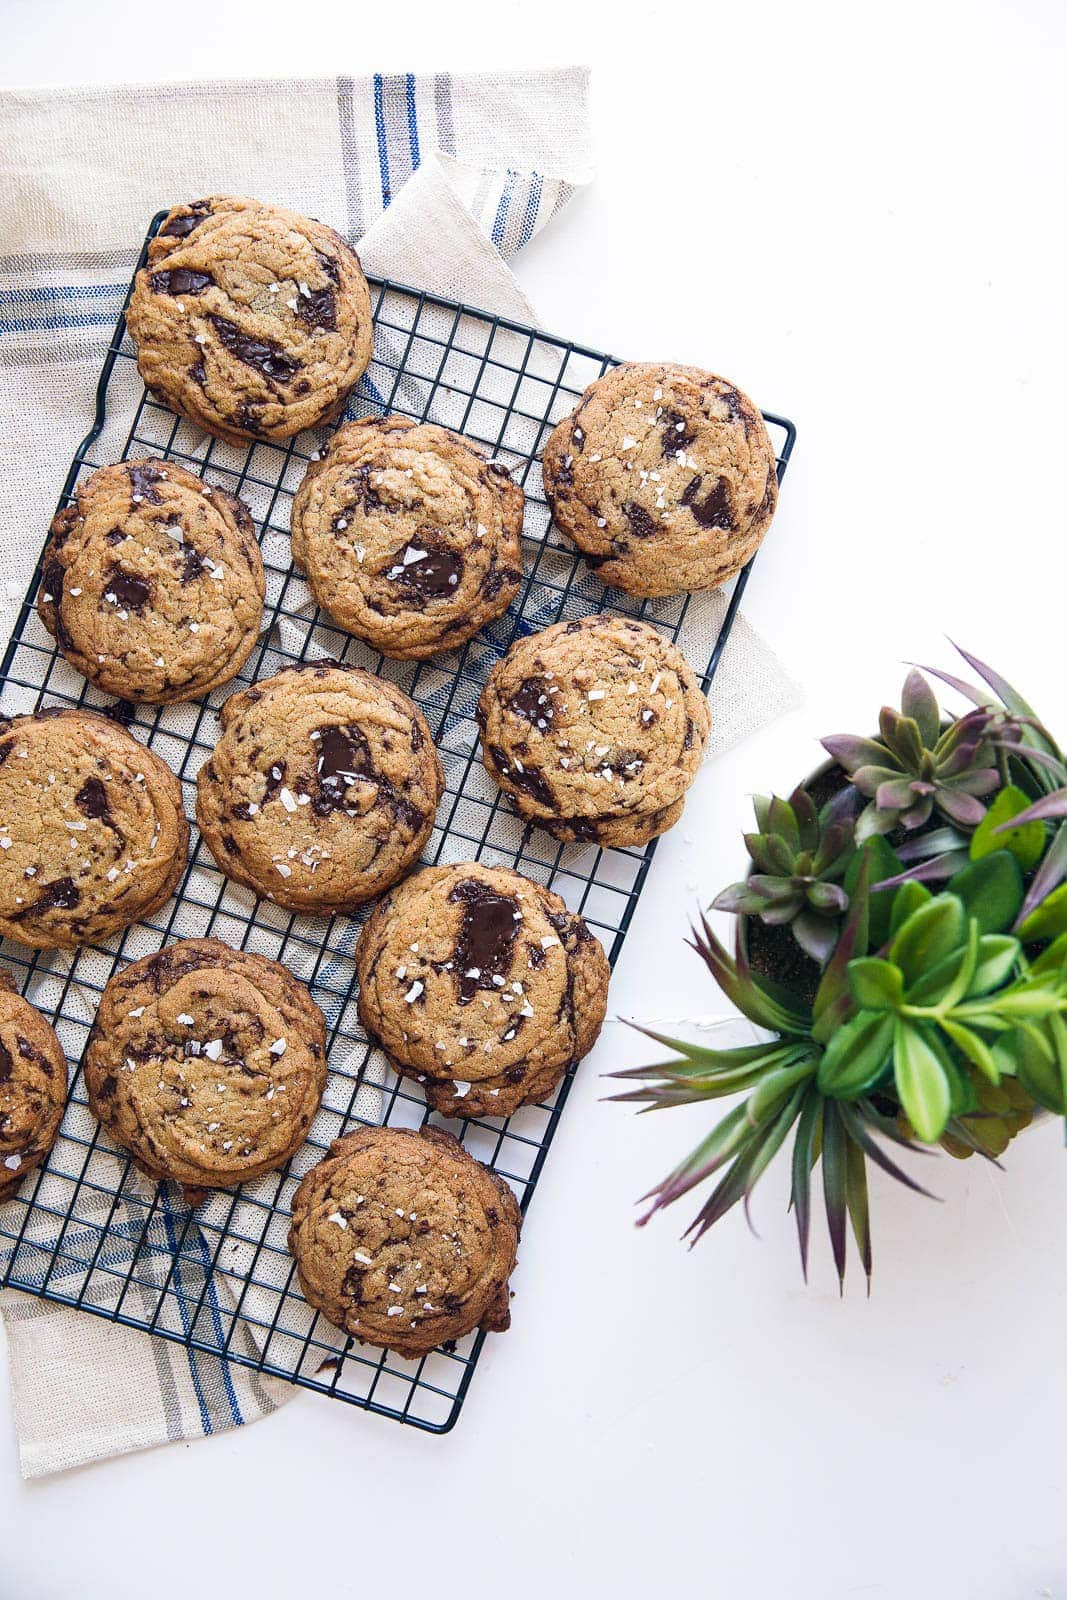 Keeping things classy with olive oil chocolate chip cookies, loaded with huge chunks of dark chocolate and sea salt!